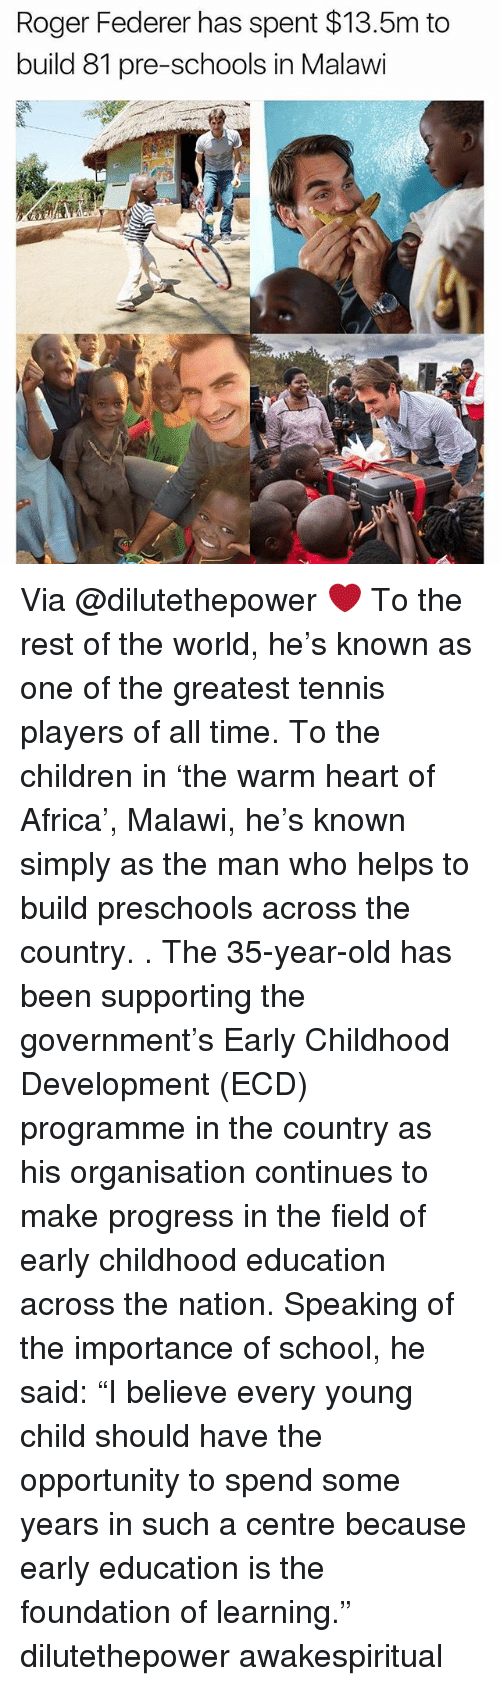 "Africa, Children, and Memes: Roger Federer has spent $13.5m to  build 81 pre-schools in Malawi Via @dilutethepower ❤ To the rest of the world, he's known as one of the greatest tennis players of all time. To the children in 'the warm heart of Africa', Malawi, he's known simply as the man who helps to build preschools across the country. . The 35-year-old has been supporting the government's Early Childhood Development (ECD) programme in the country as his organisation continues to make progress in the field of early childhood education across the nation. Speaking of the importance of school, he said: ""I believe every young child should have the opportunity to spend some years in such a centre because early education is the foundation of learning."" dilutethepower awakespiritual"